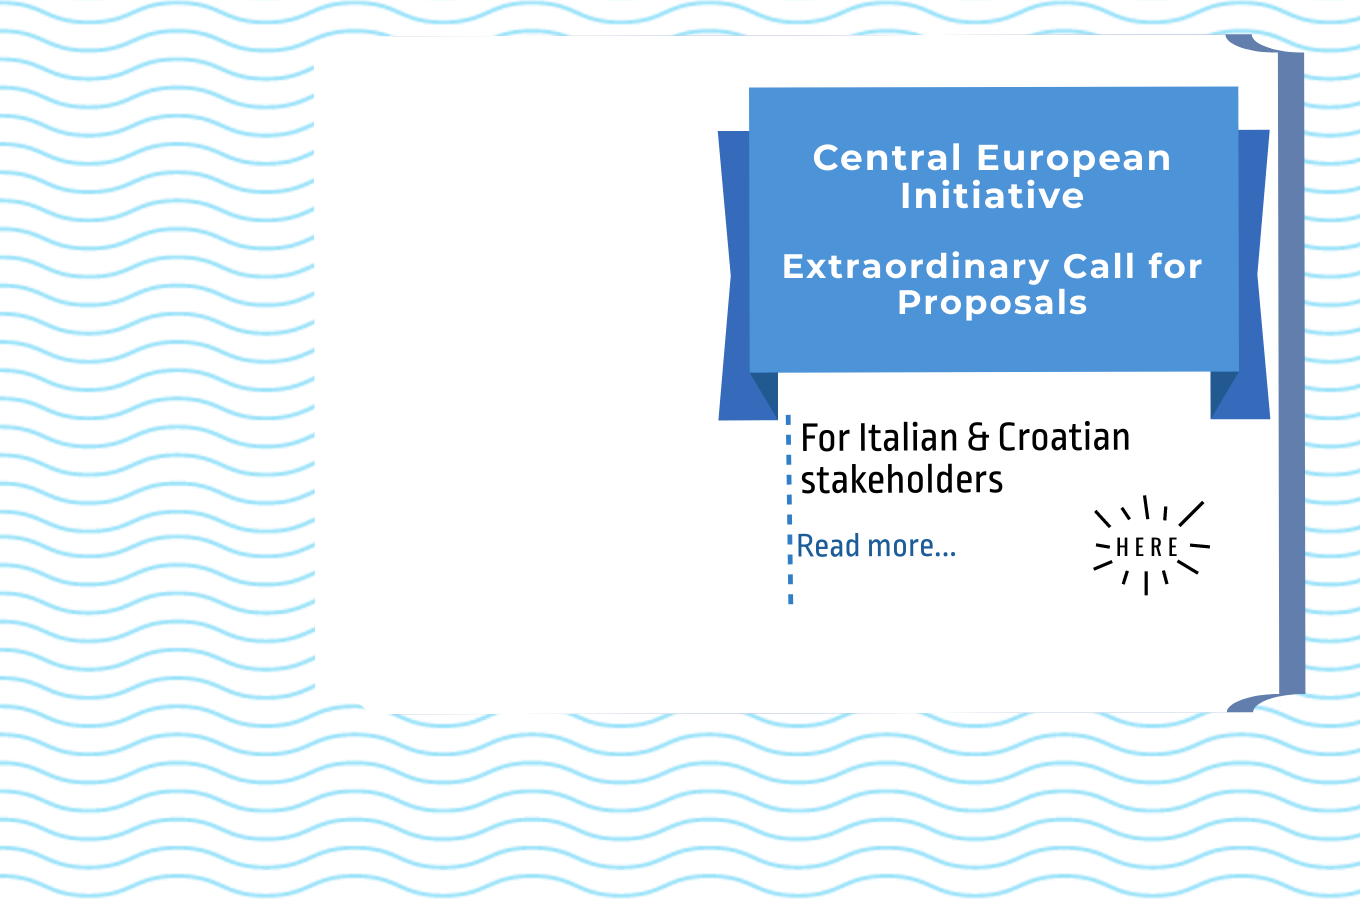 CEI Extraordinary Call for Proposals 2020